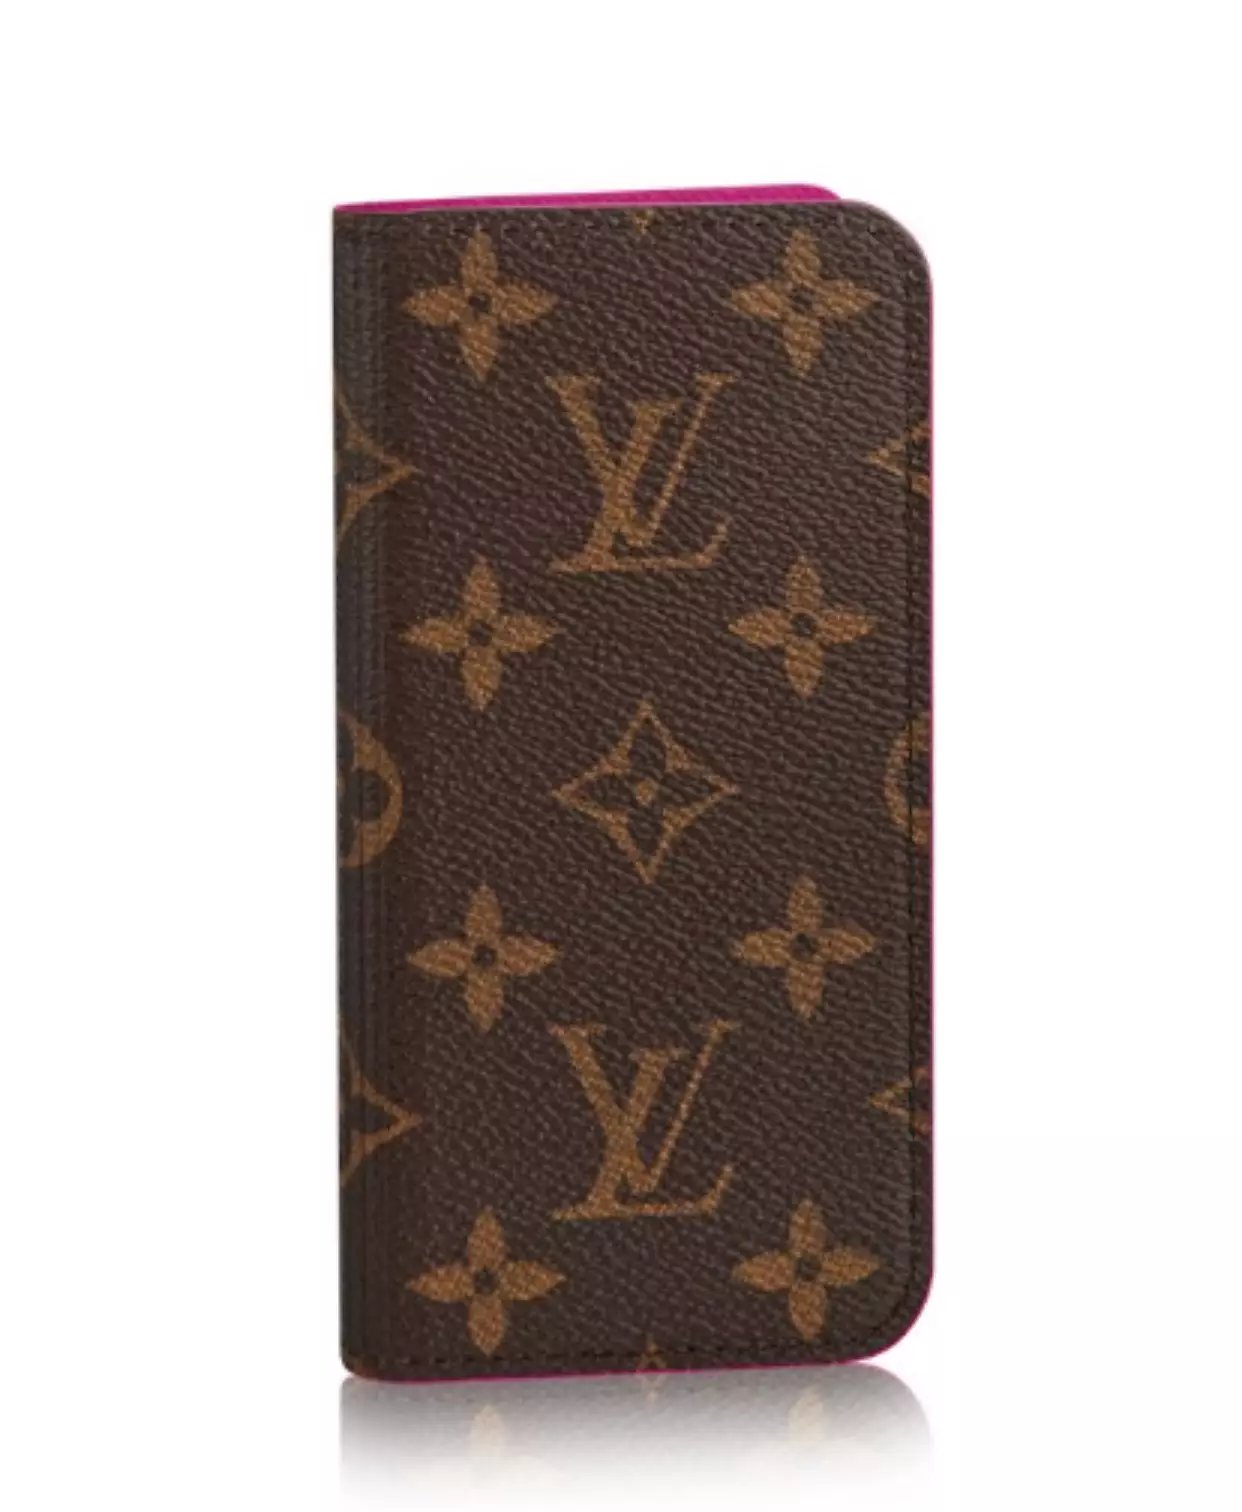 iphone hülle bedrucken lassen günstig iphone case bedrucken Louis Vuitton iphone7 hülle iphone 7 gürteltasche leder handyhülle mit foto iphone 7 handy ca7 elber machen silikon ca7 iphone 7 hülle mit sichtfenster iphone 7 hülle lustig